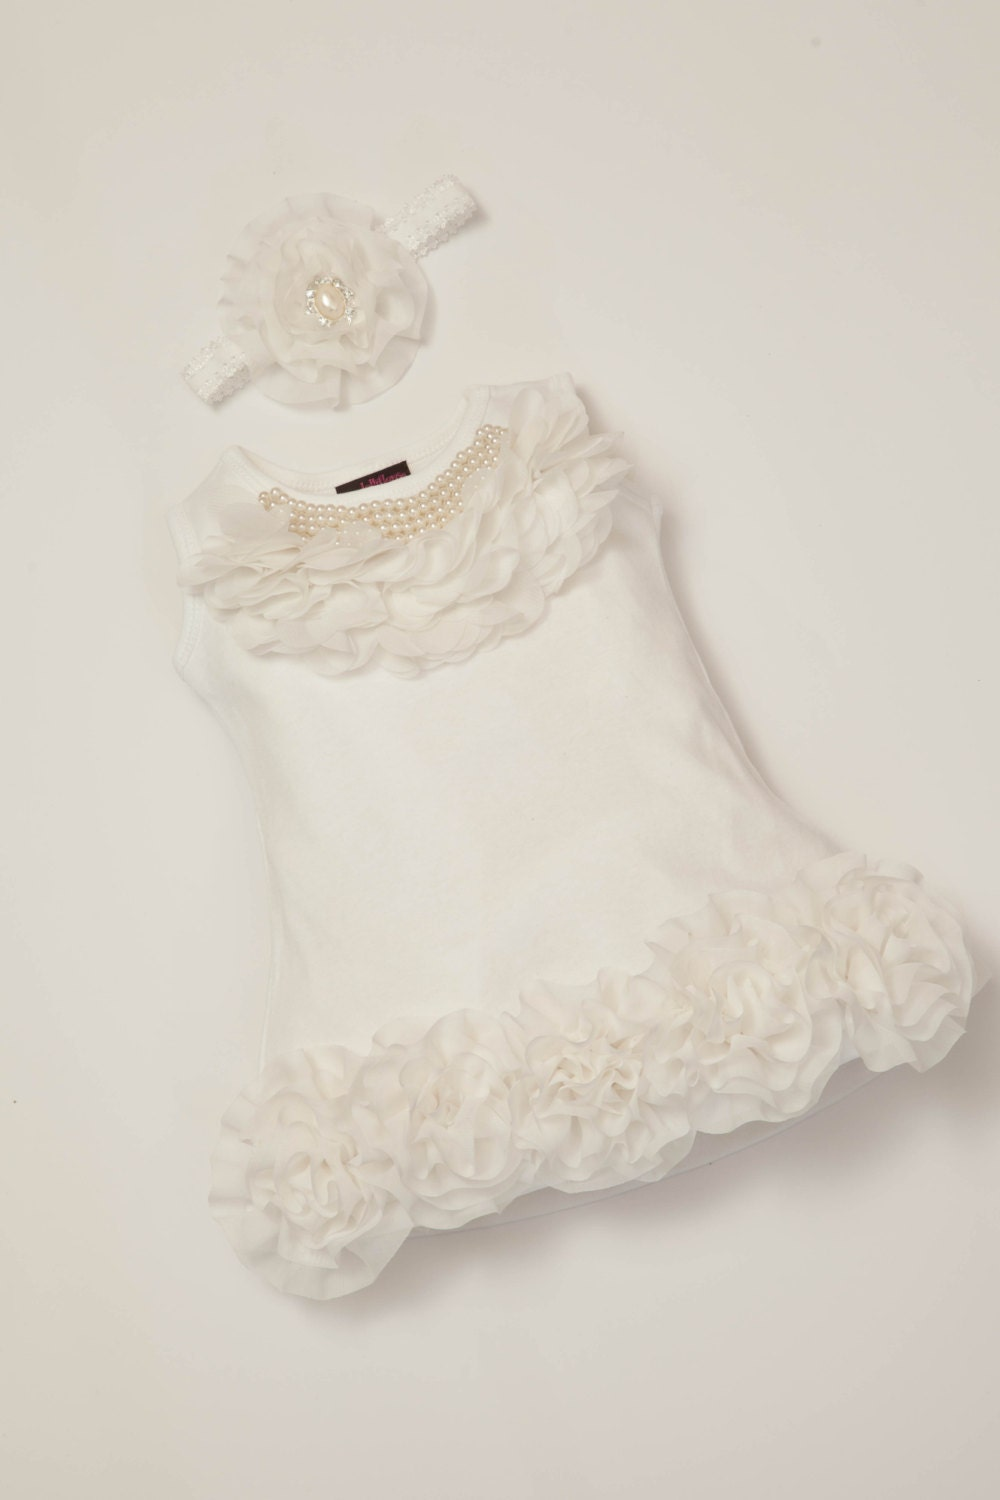 012ms baby girl dress cotton infant white dress with chiffon